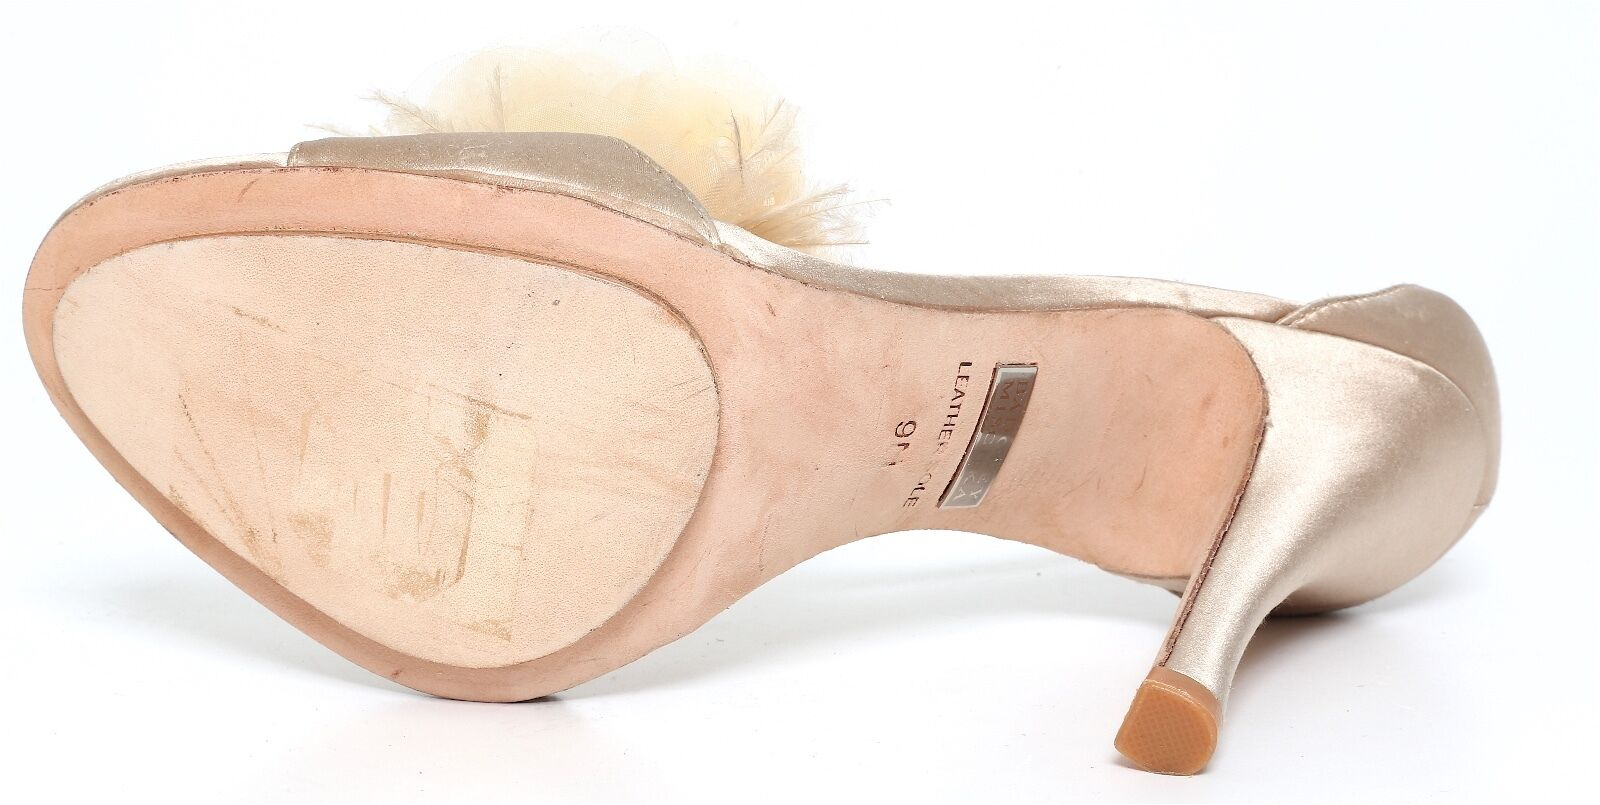 Badgley Mischka Flower Beige Heels Satin Beige Flower Damens 2283 Sz 9 M 98e38f